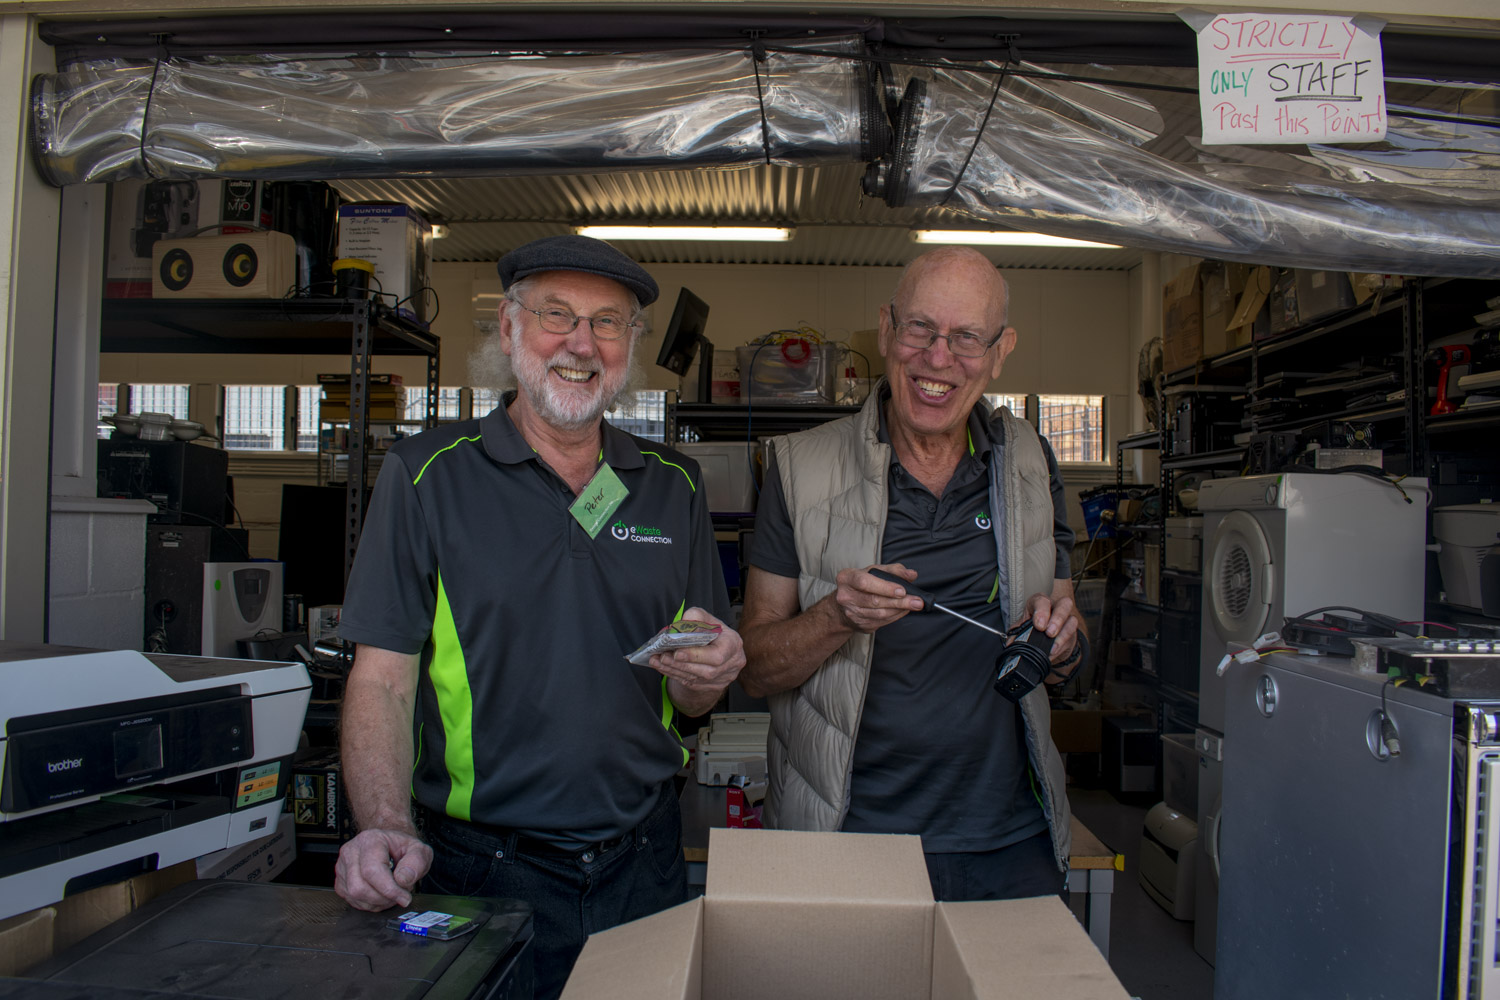 Volunteers Peter Paech and Roger Sanderson enjoy their time at Kenmore's eWaste Connection.